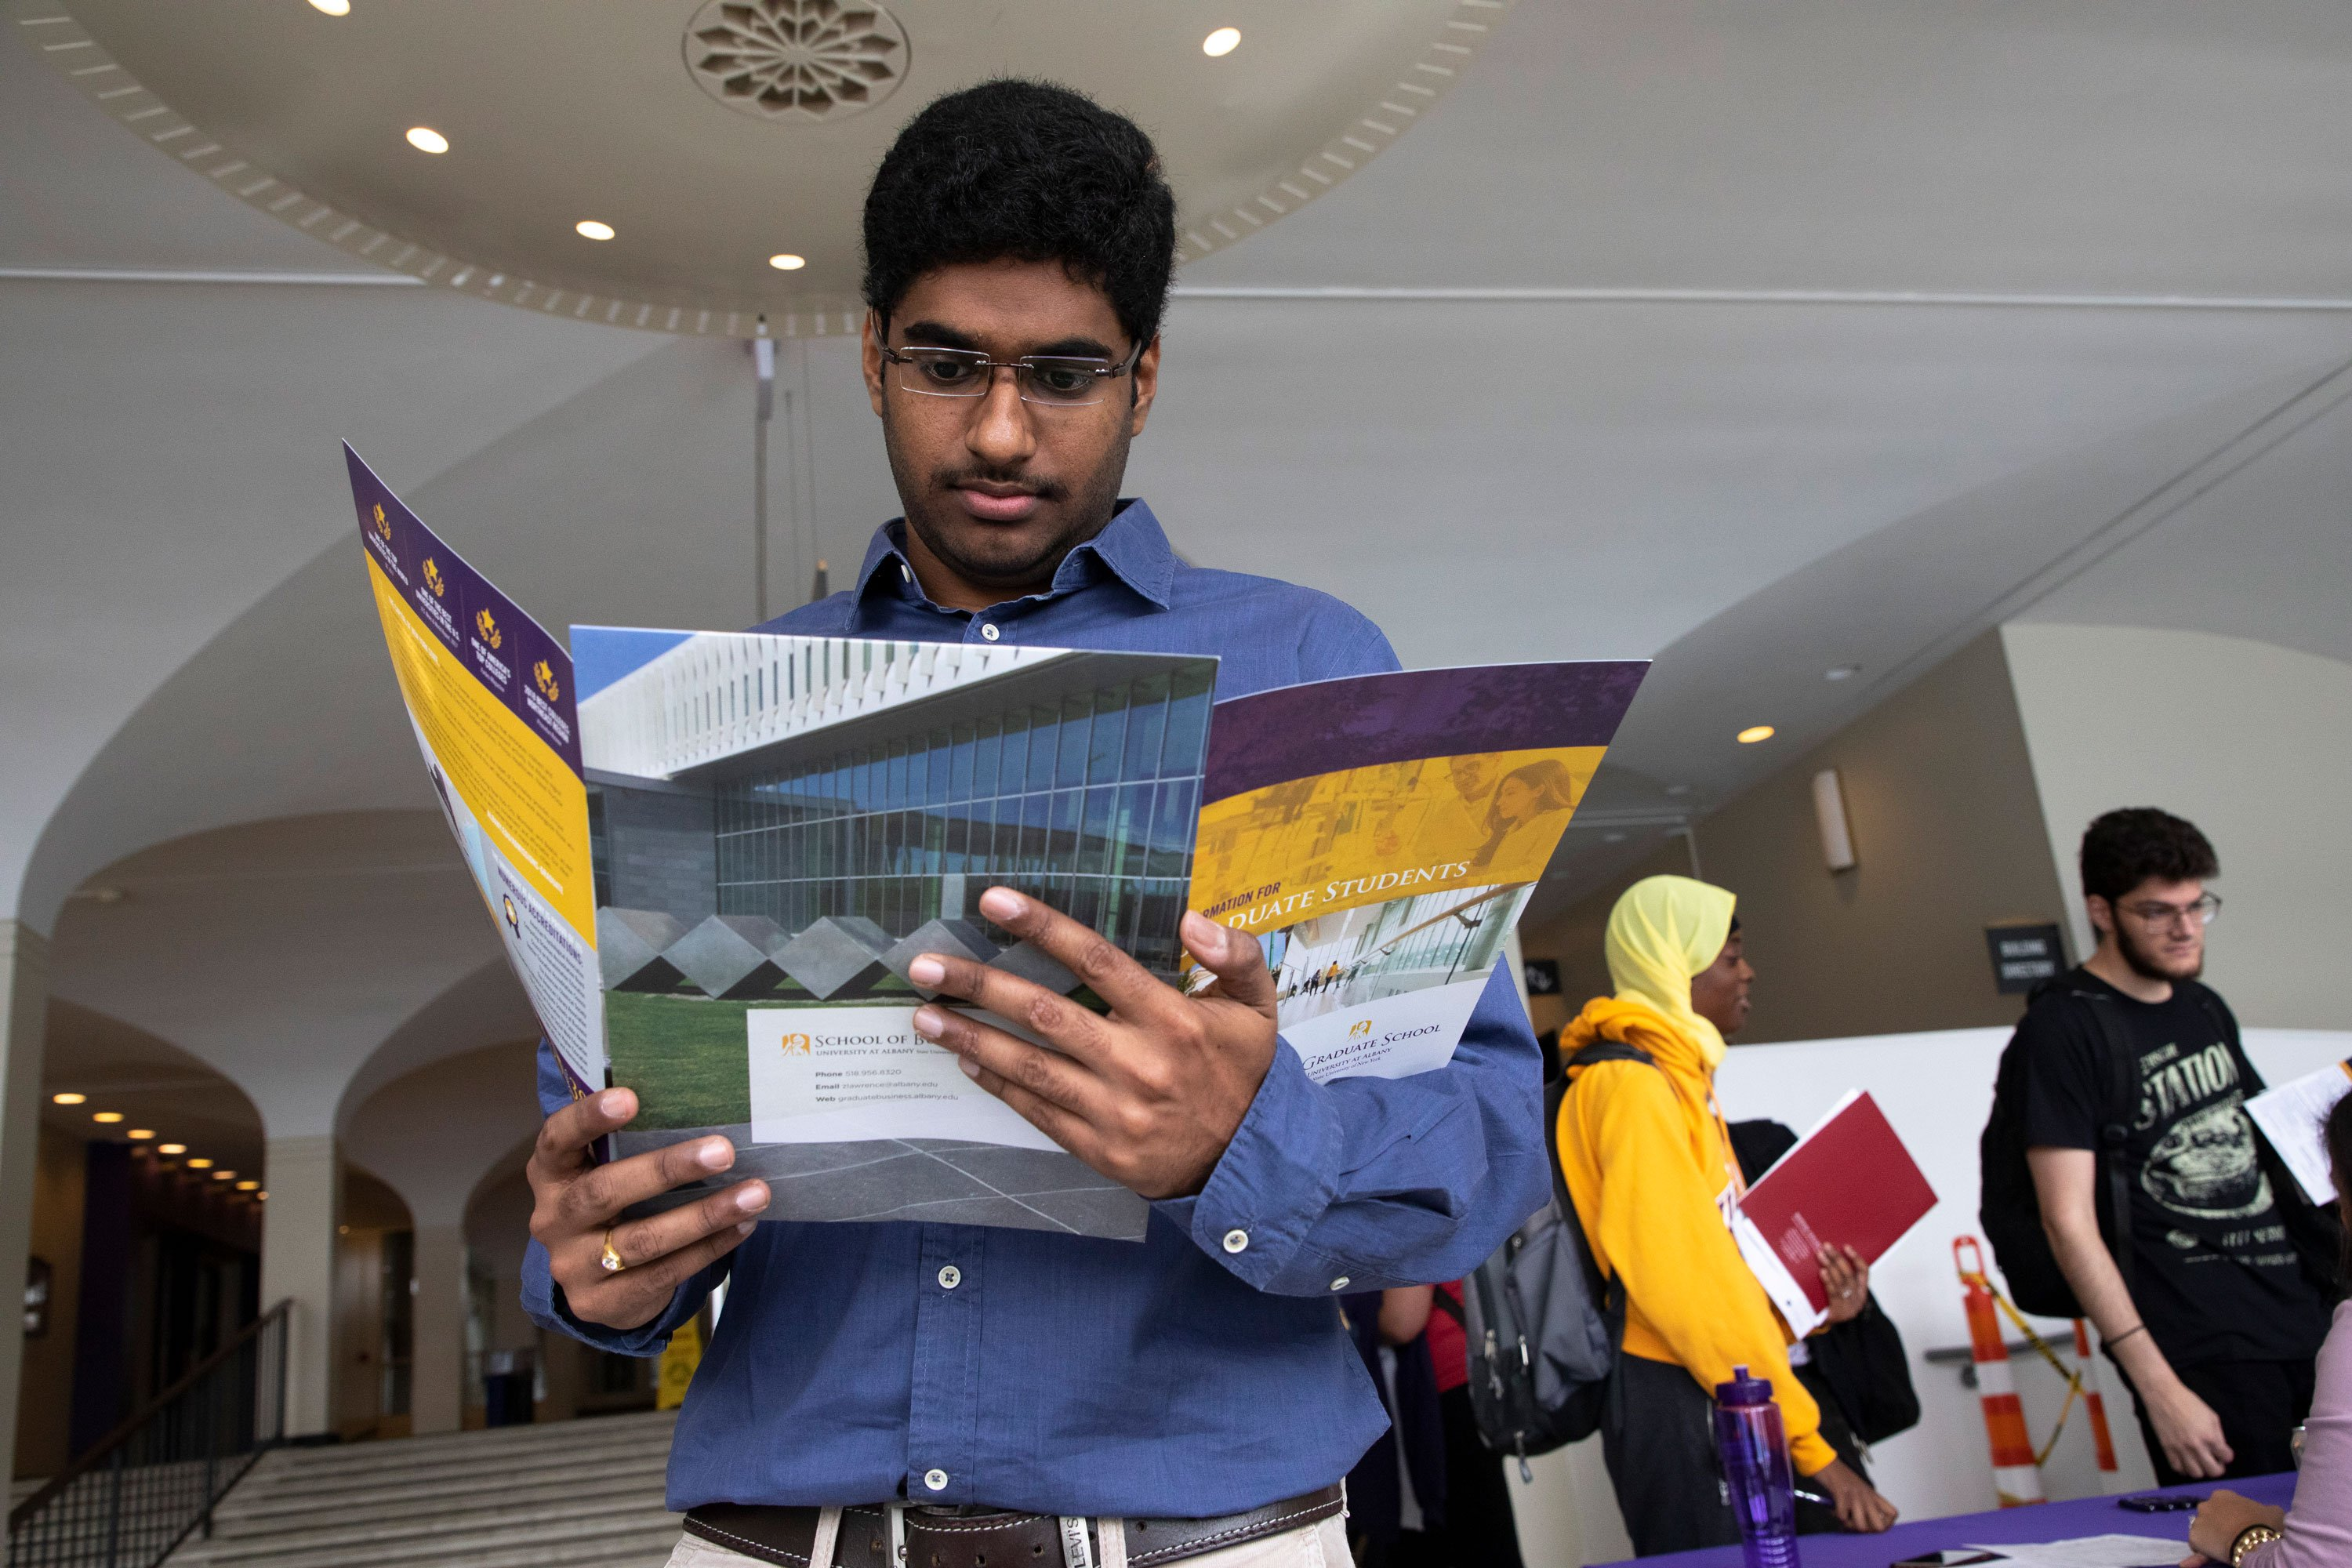 A student attends UAlbany's annual Graduate & Professional School Fair on the Uptown Campus.